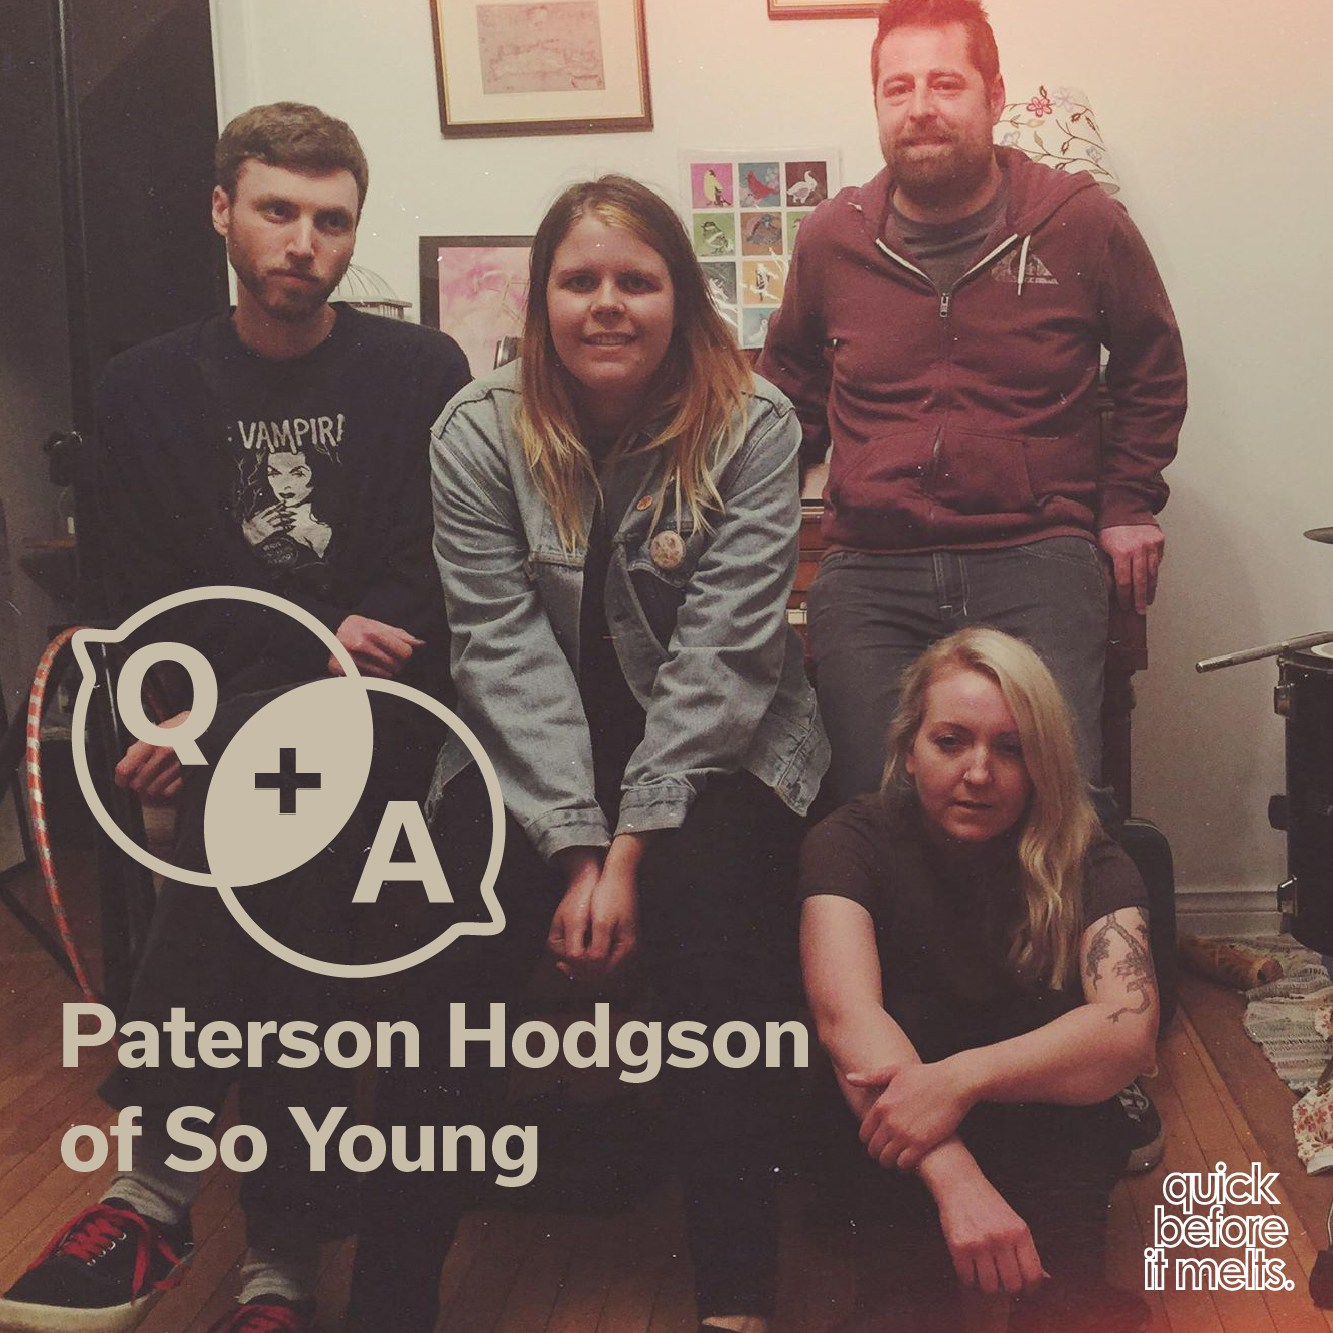 Q+A >> PATERSON HODGSON of SO YOUNG